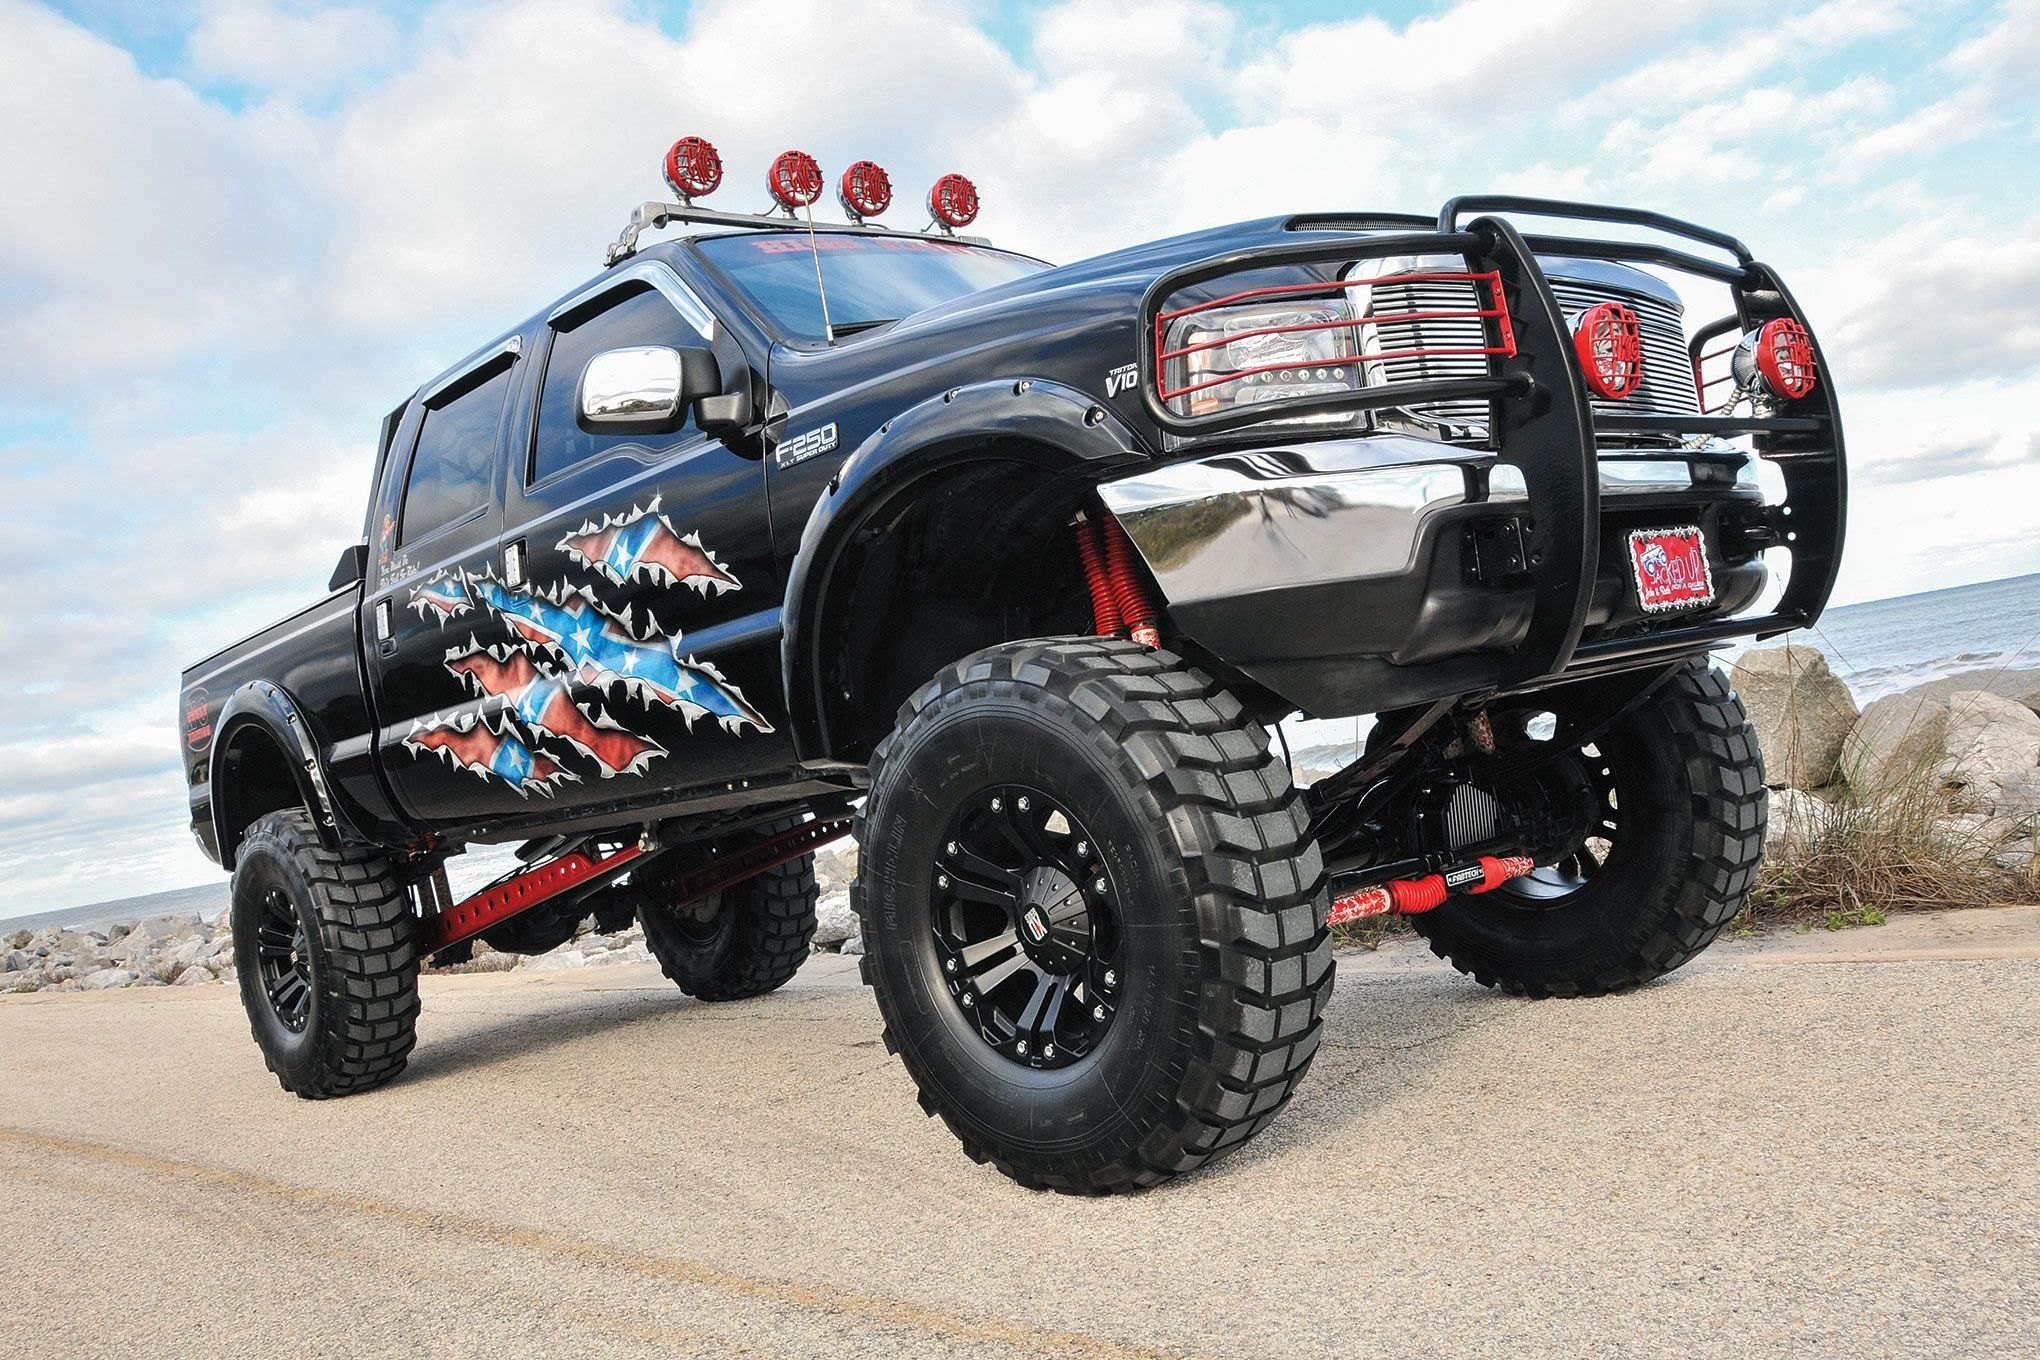 Redneck Pride Ford F 250 Super Duty Gallery 2004 F250 Lifted On 20 Xd Custom Wheels Photo By Joe Greeves